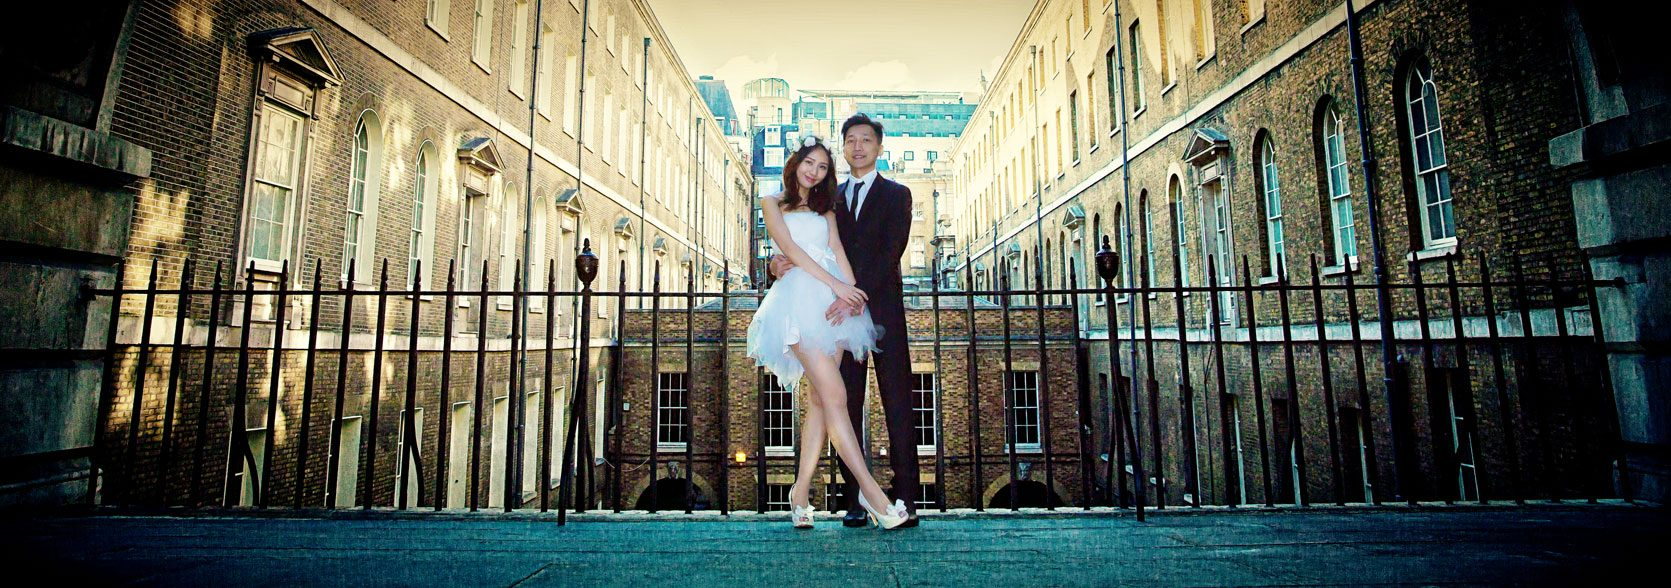 London engagement shoot with Chinese wedding couple